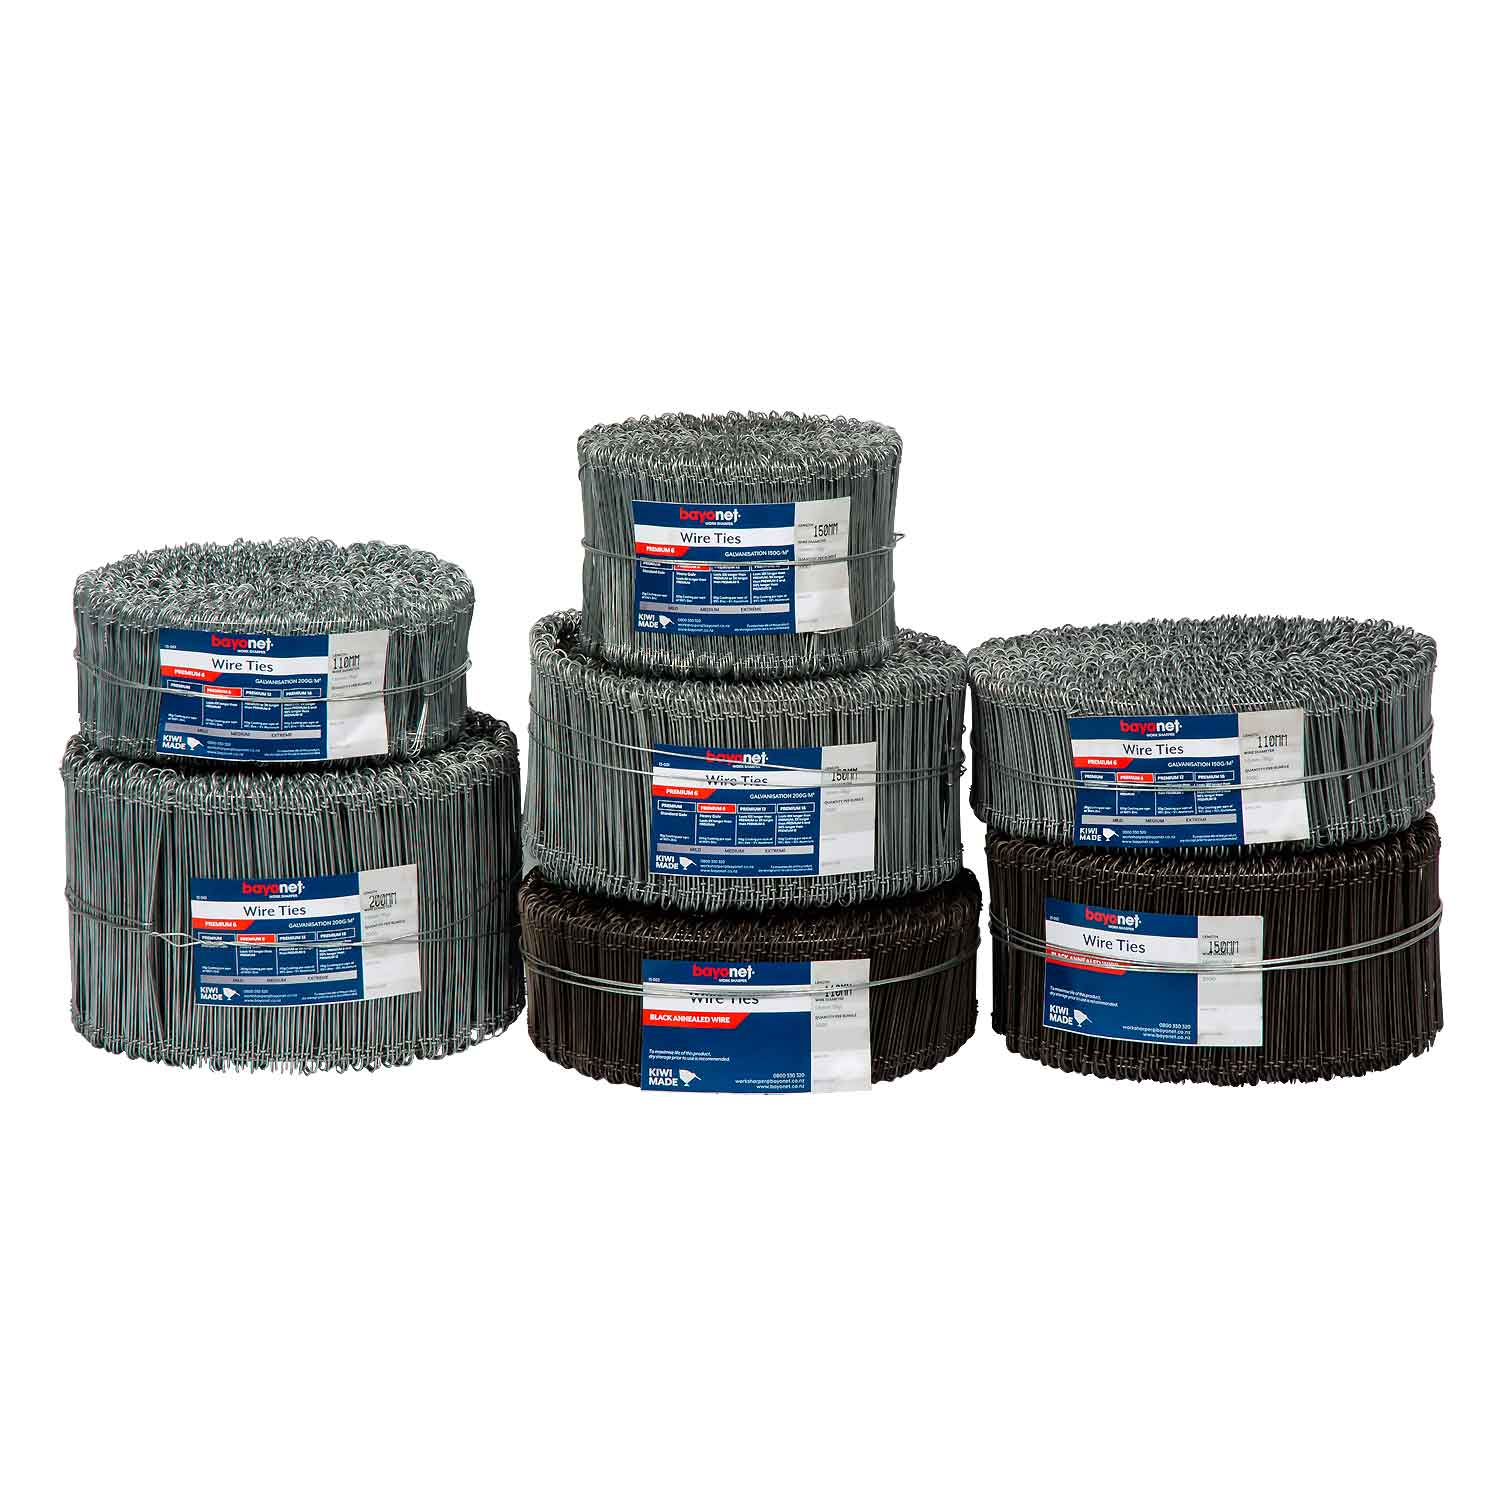 Tie wire bag ties group